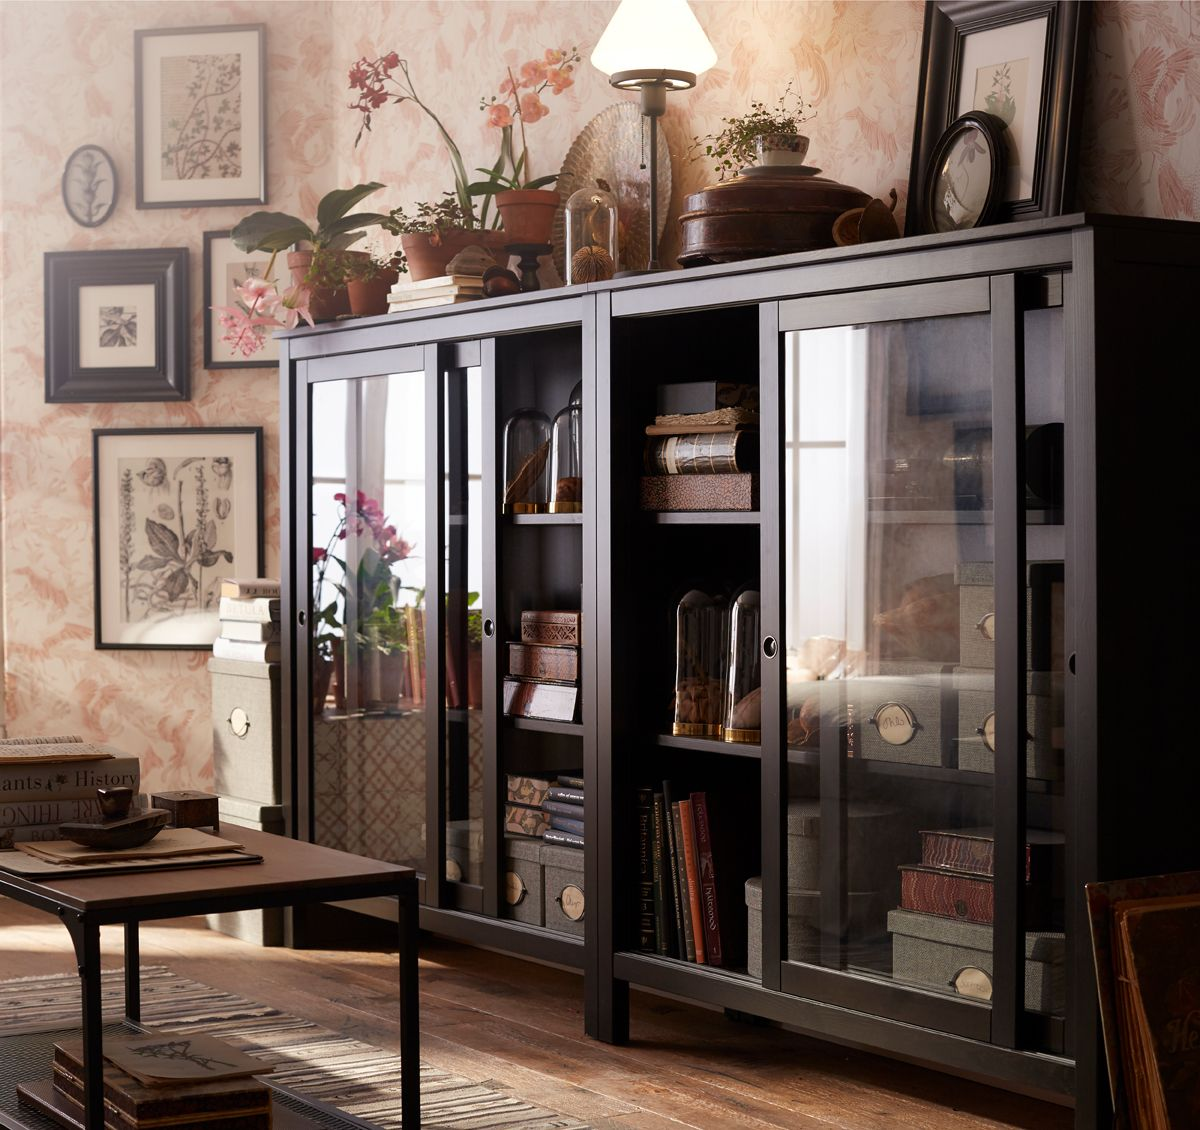 aufbewahrungsfamilien in 2019 woodworking ikea. Black Bedroom Furniture Sets. Home Design Ideas